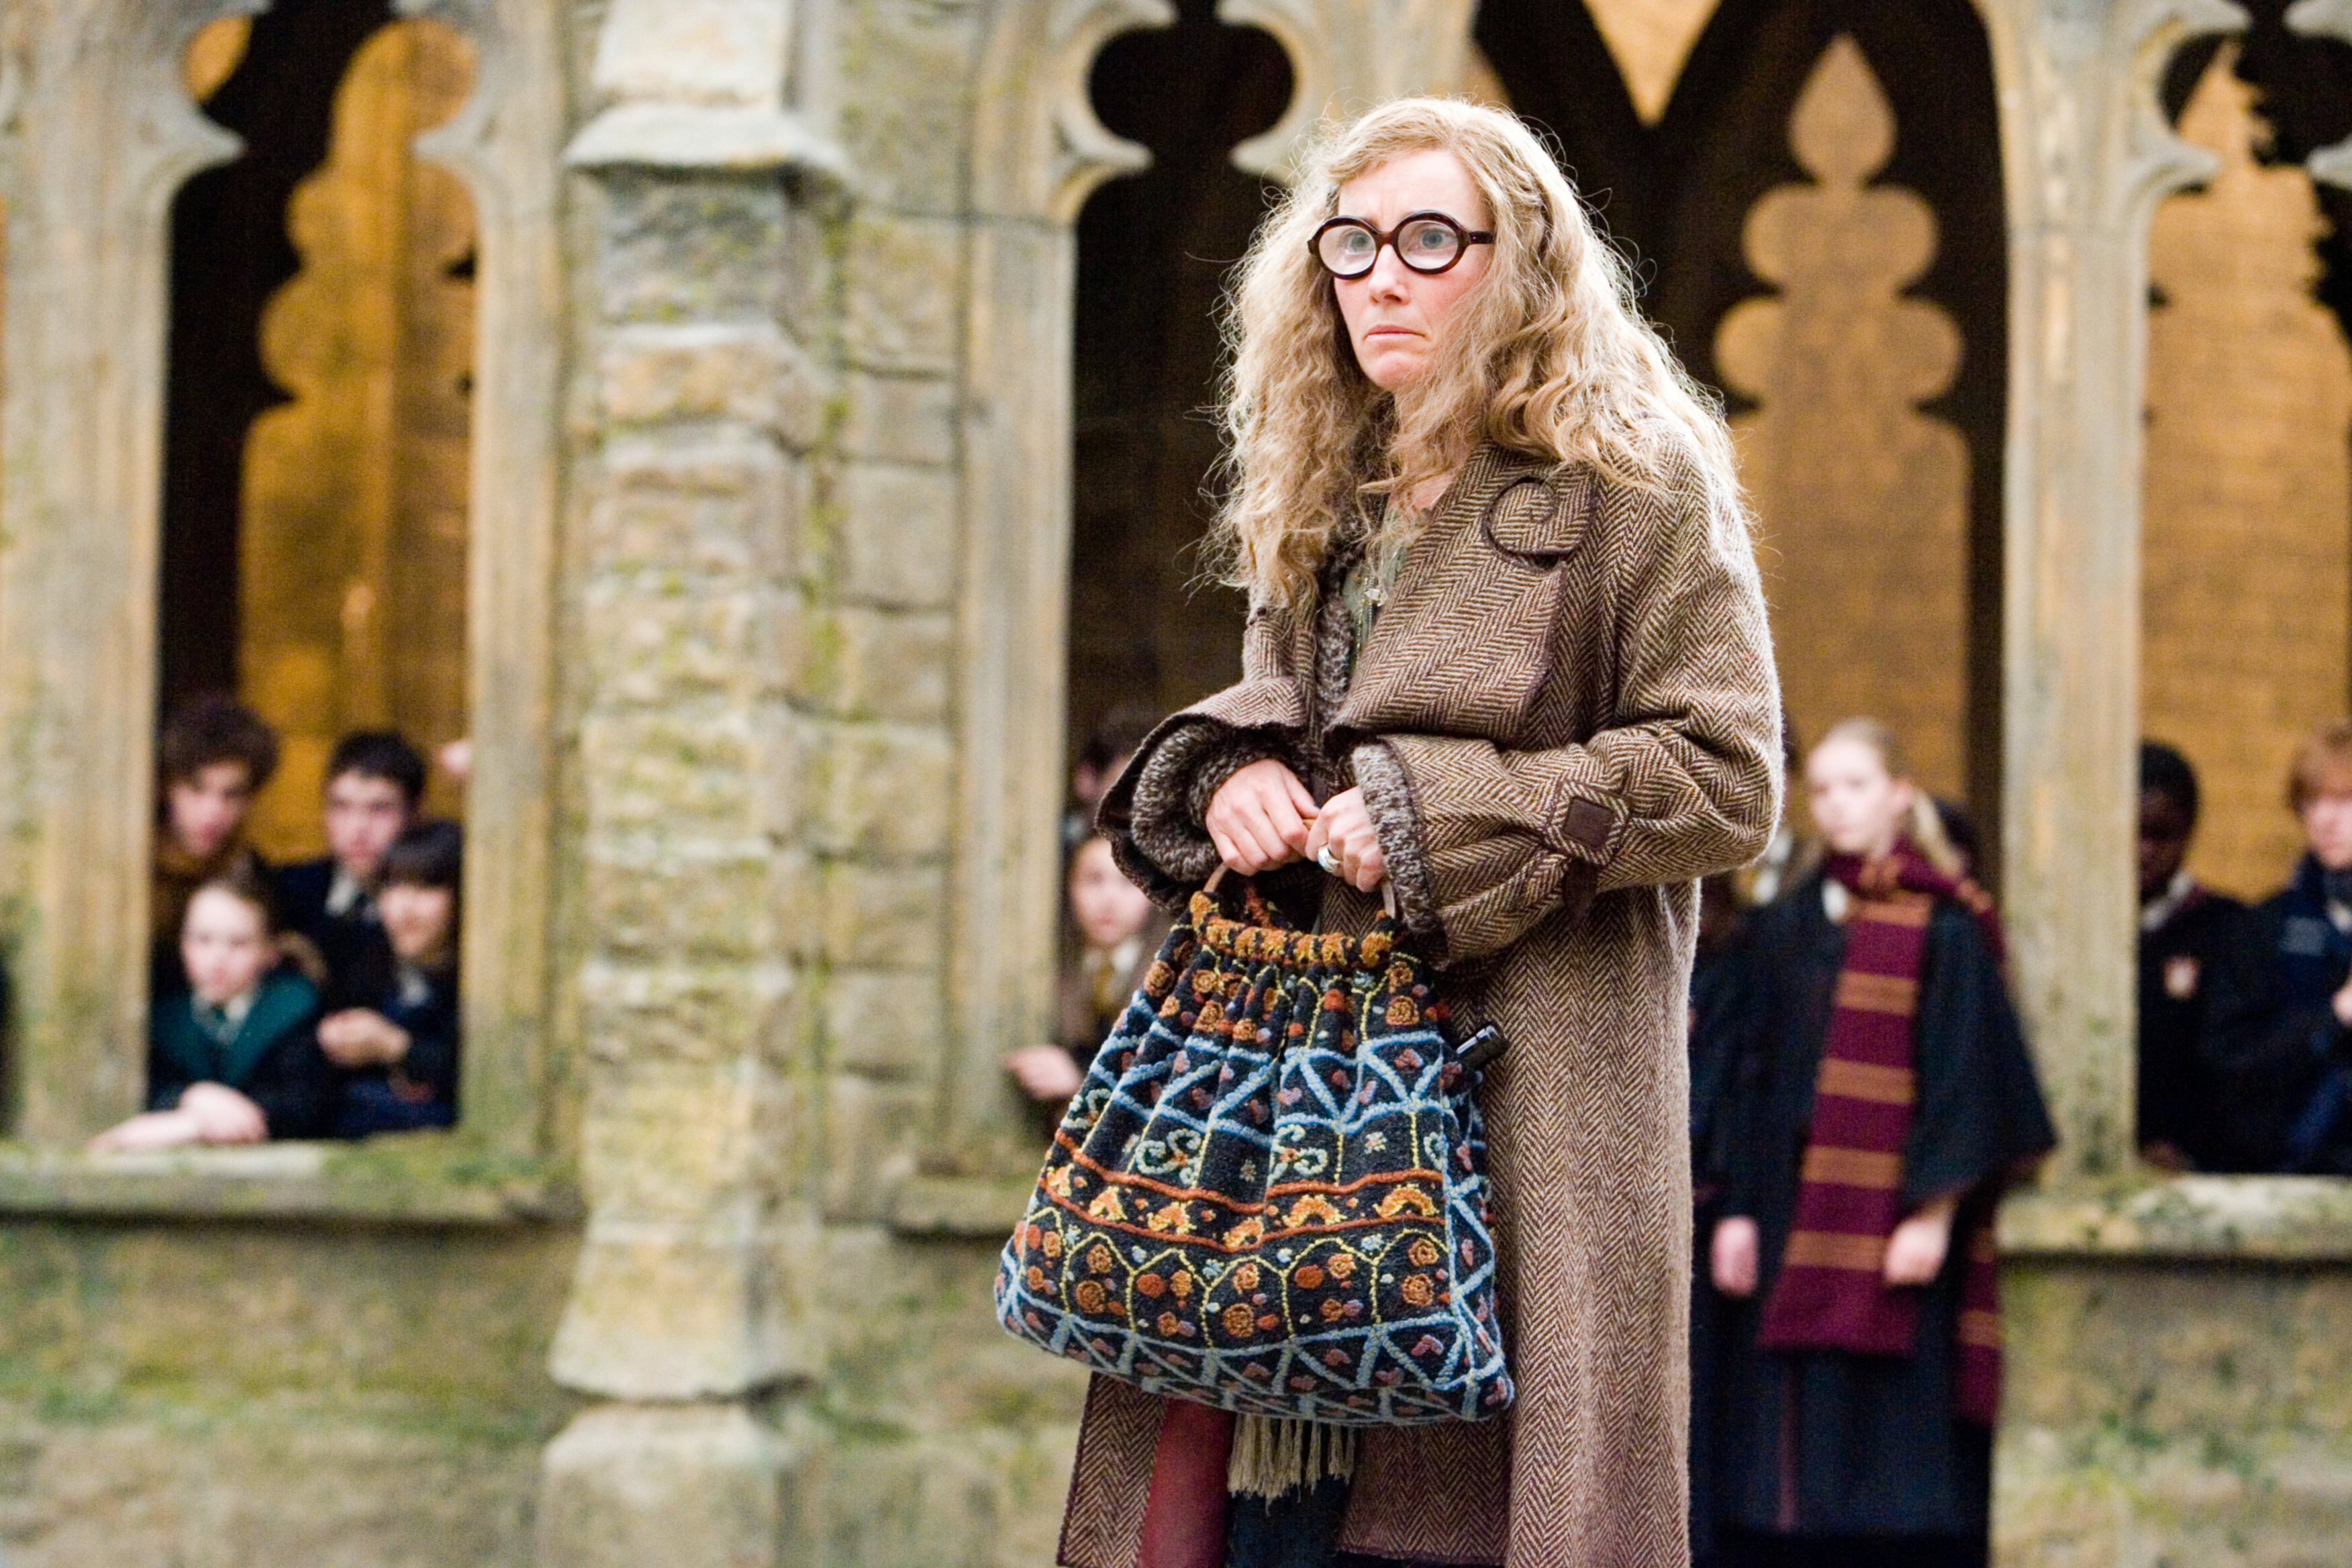 Sybil Trelawney clutches her bag after being fired by Umbridge in the Order of the Pheonix